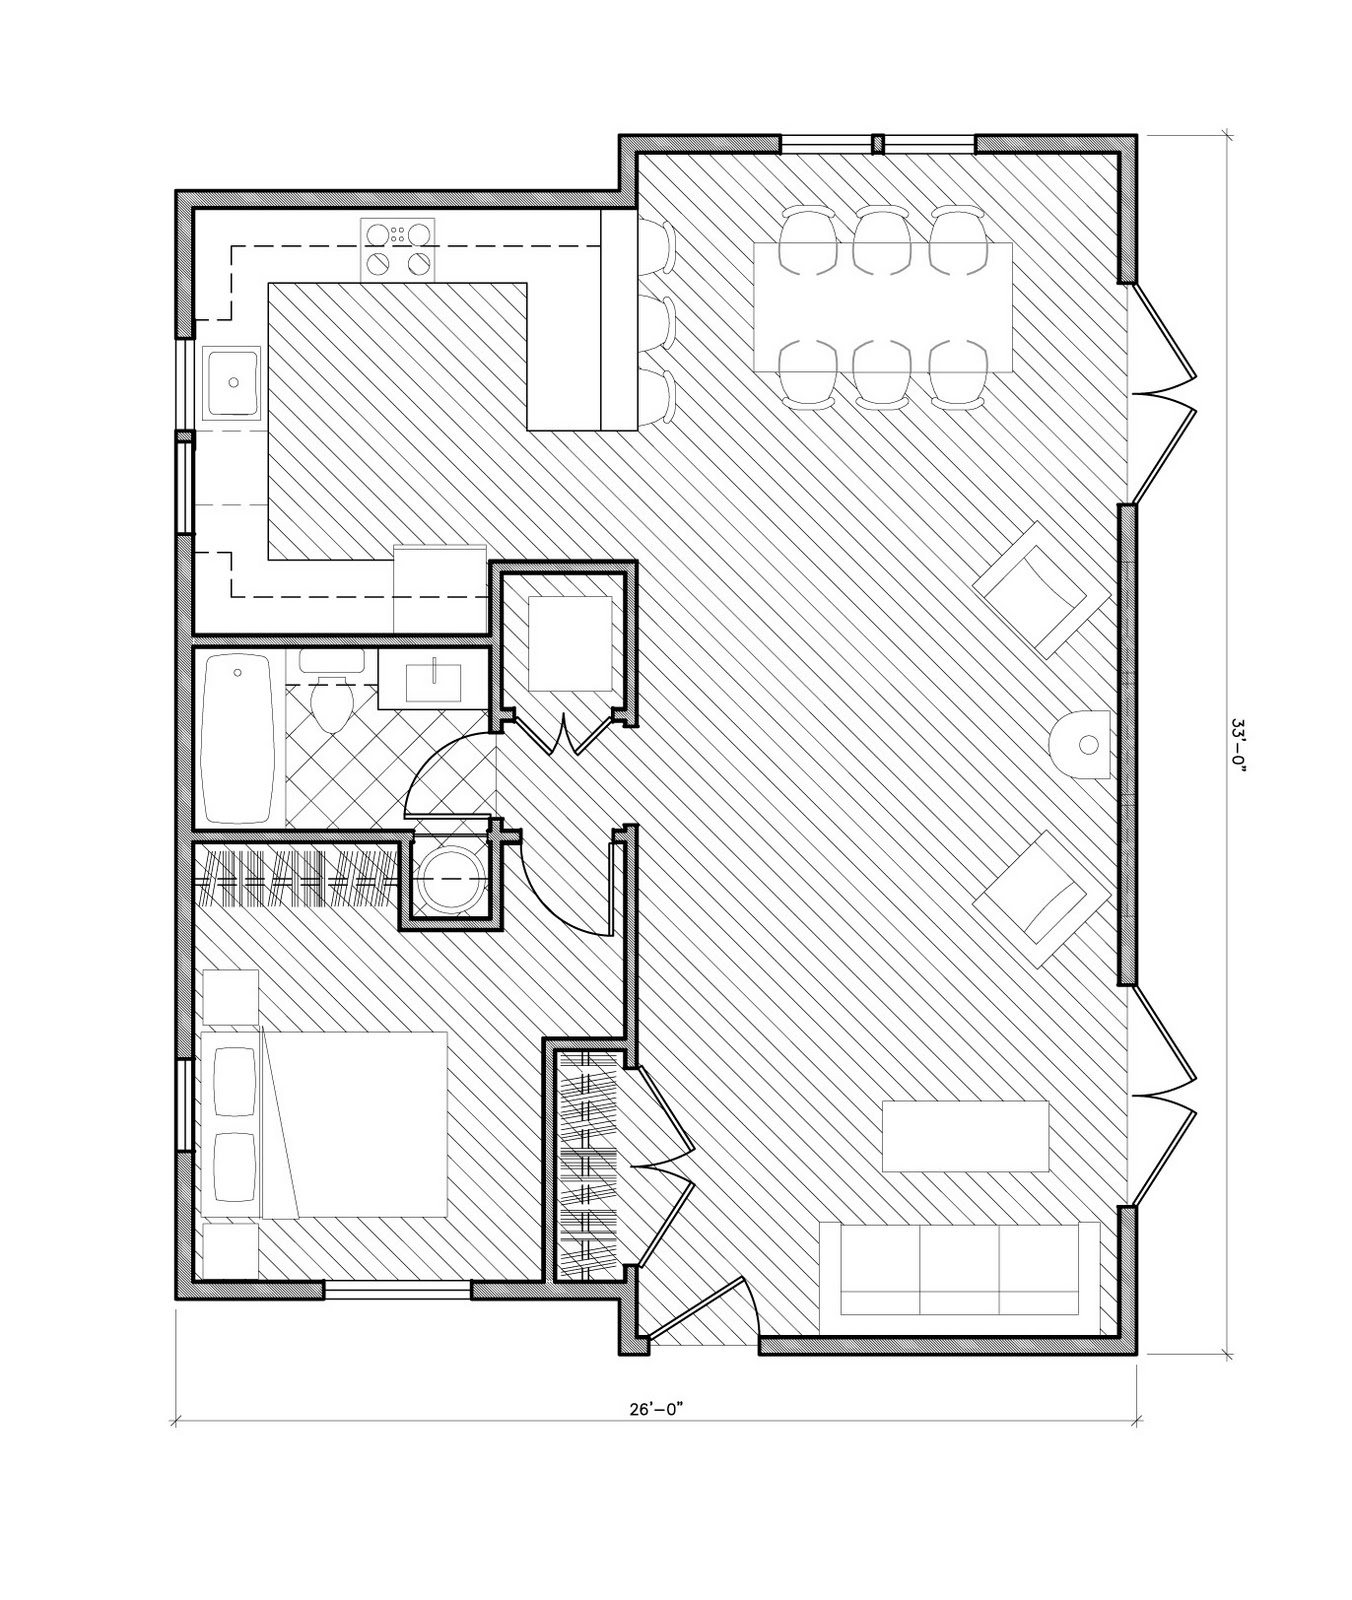 mother in law cottage plans find house plans On in law cottage plans